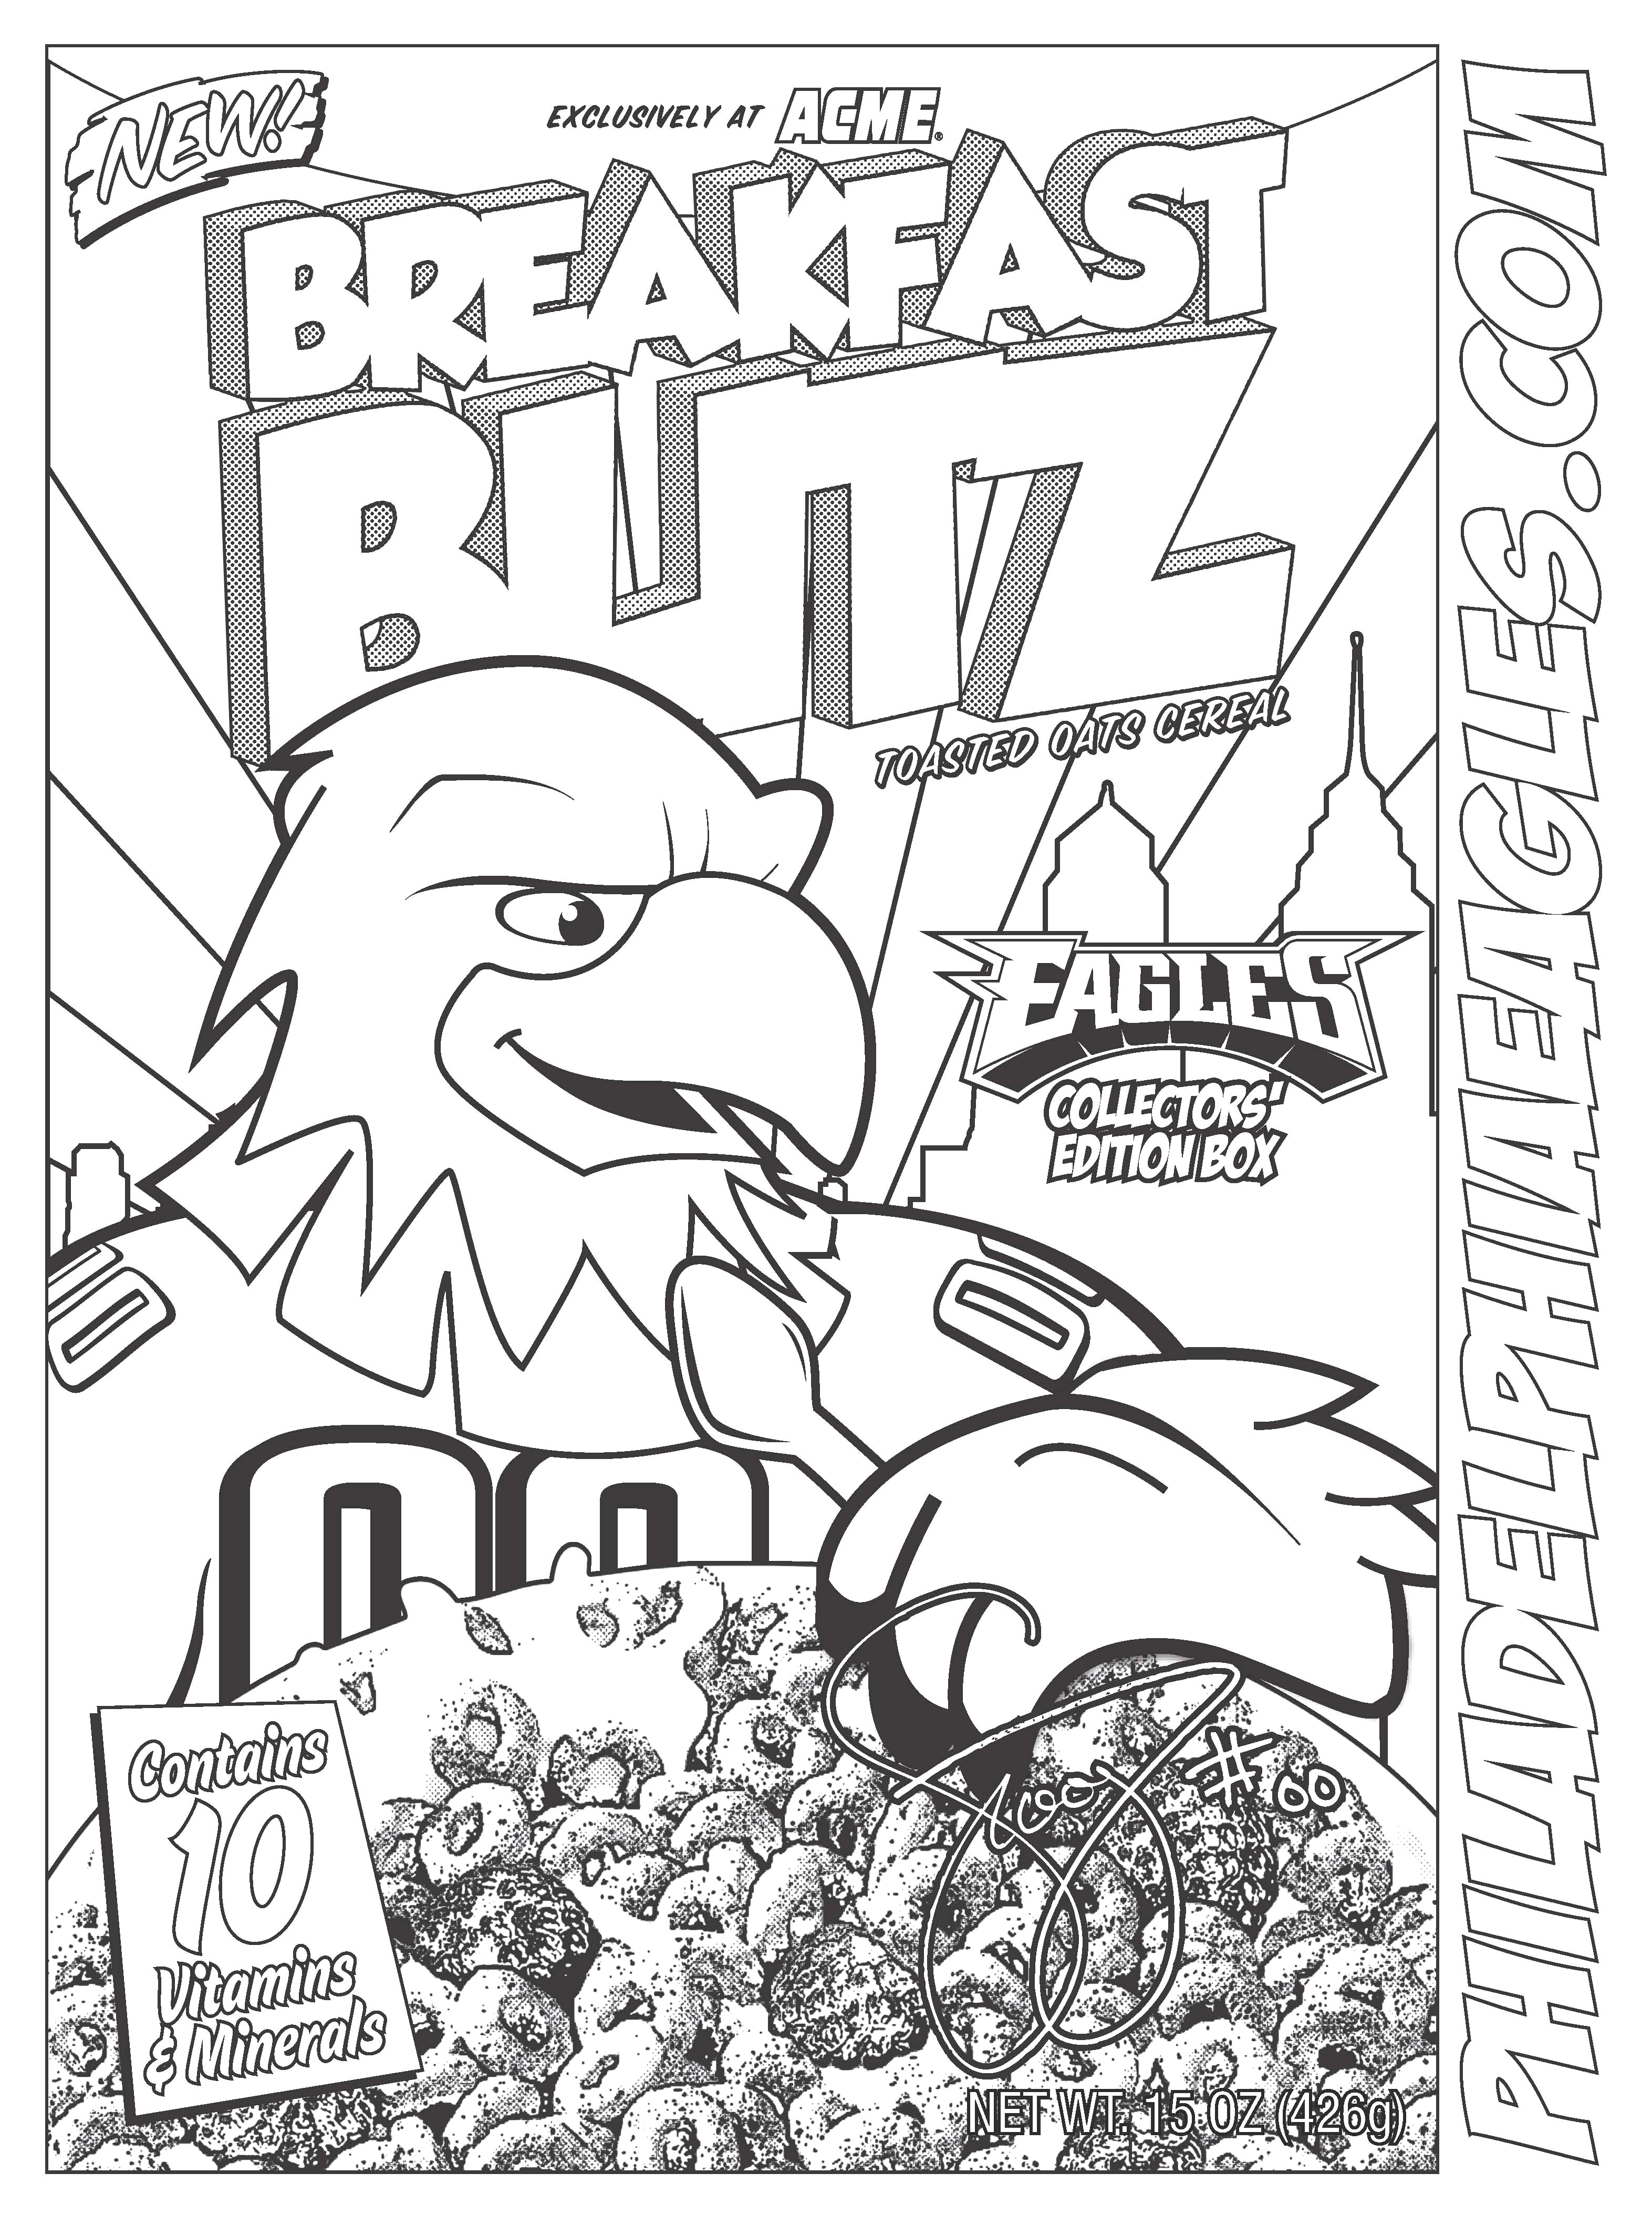 seattle seahawks coloring page seattle seahawks coloring pages at getcoloringscom free coloring seattle seahawks page